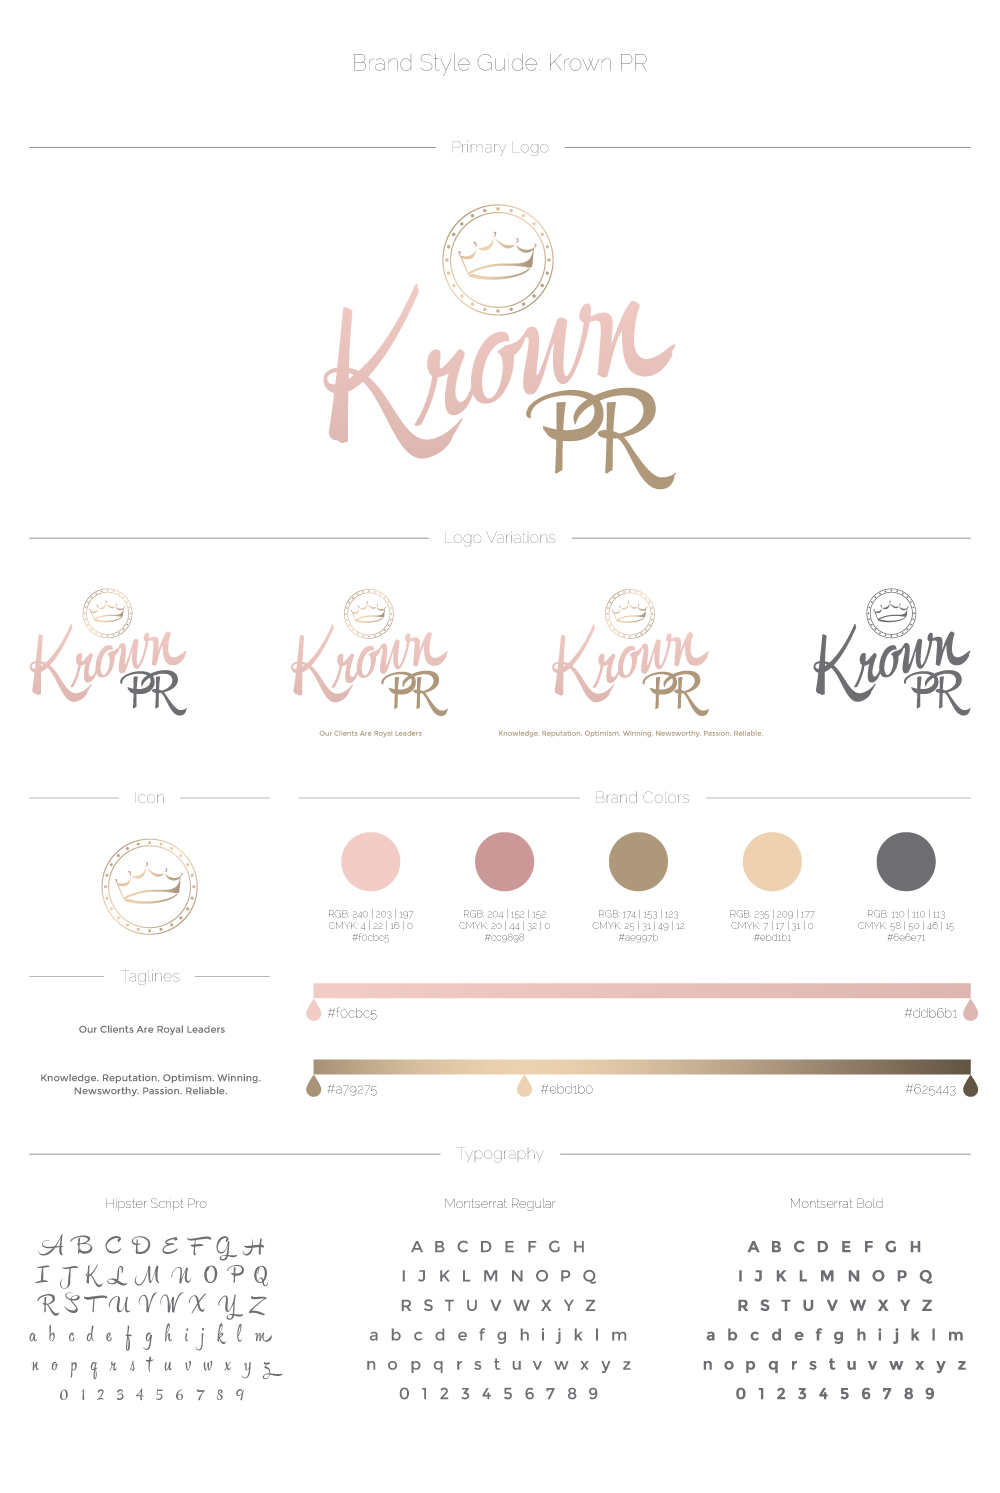 Krown PR style guide, including logo, logo variations, icon, colour selection and font selection